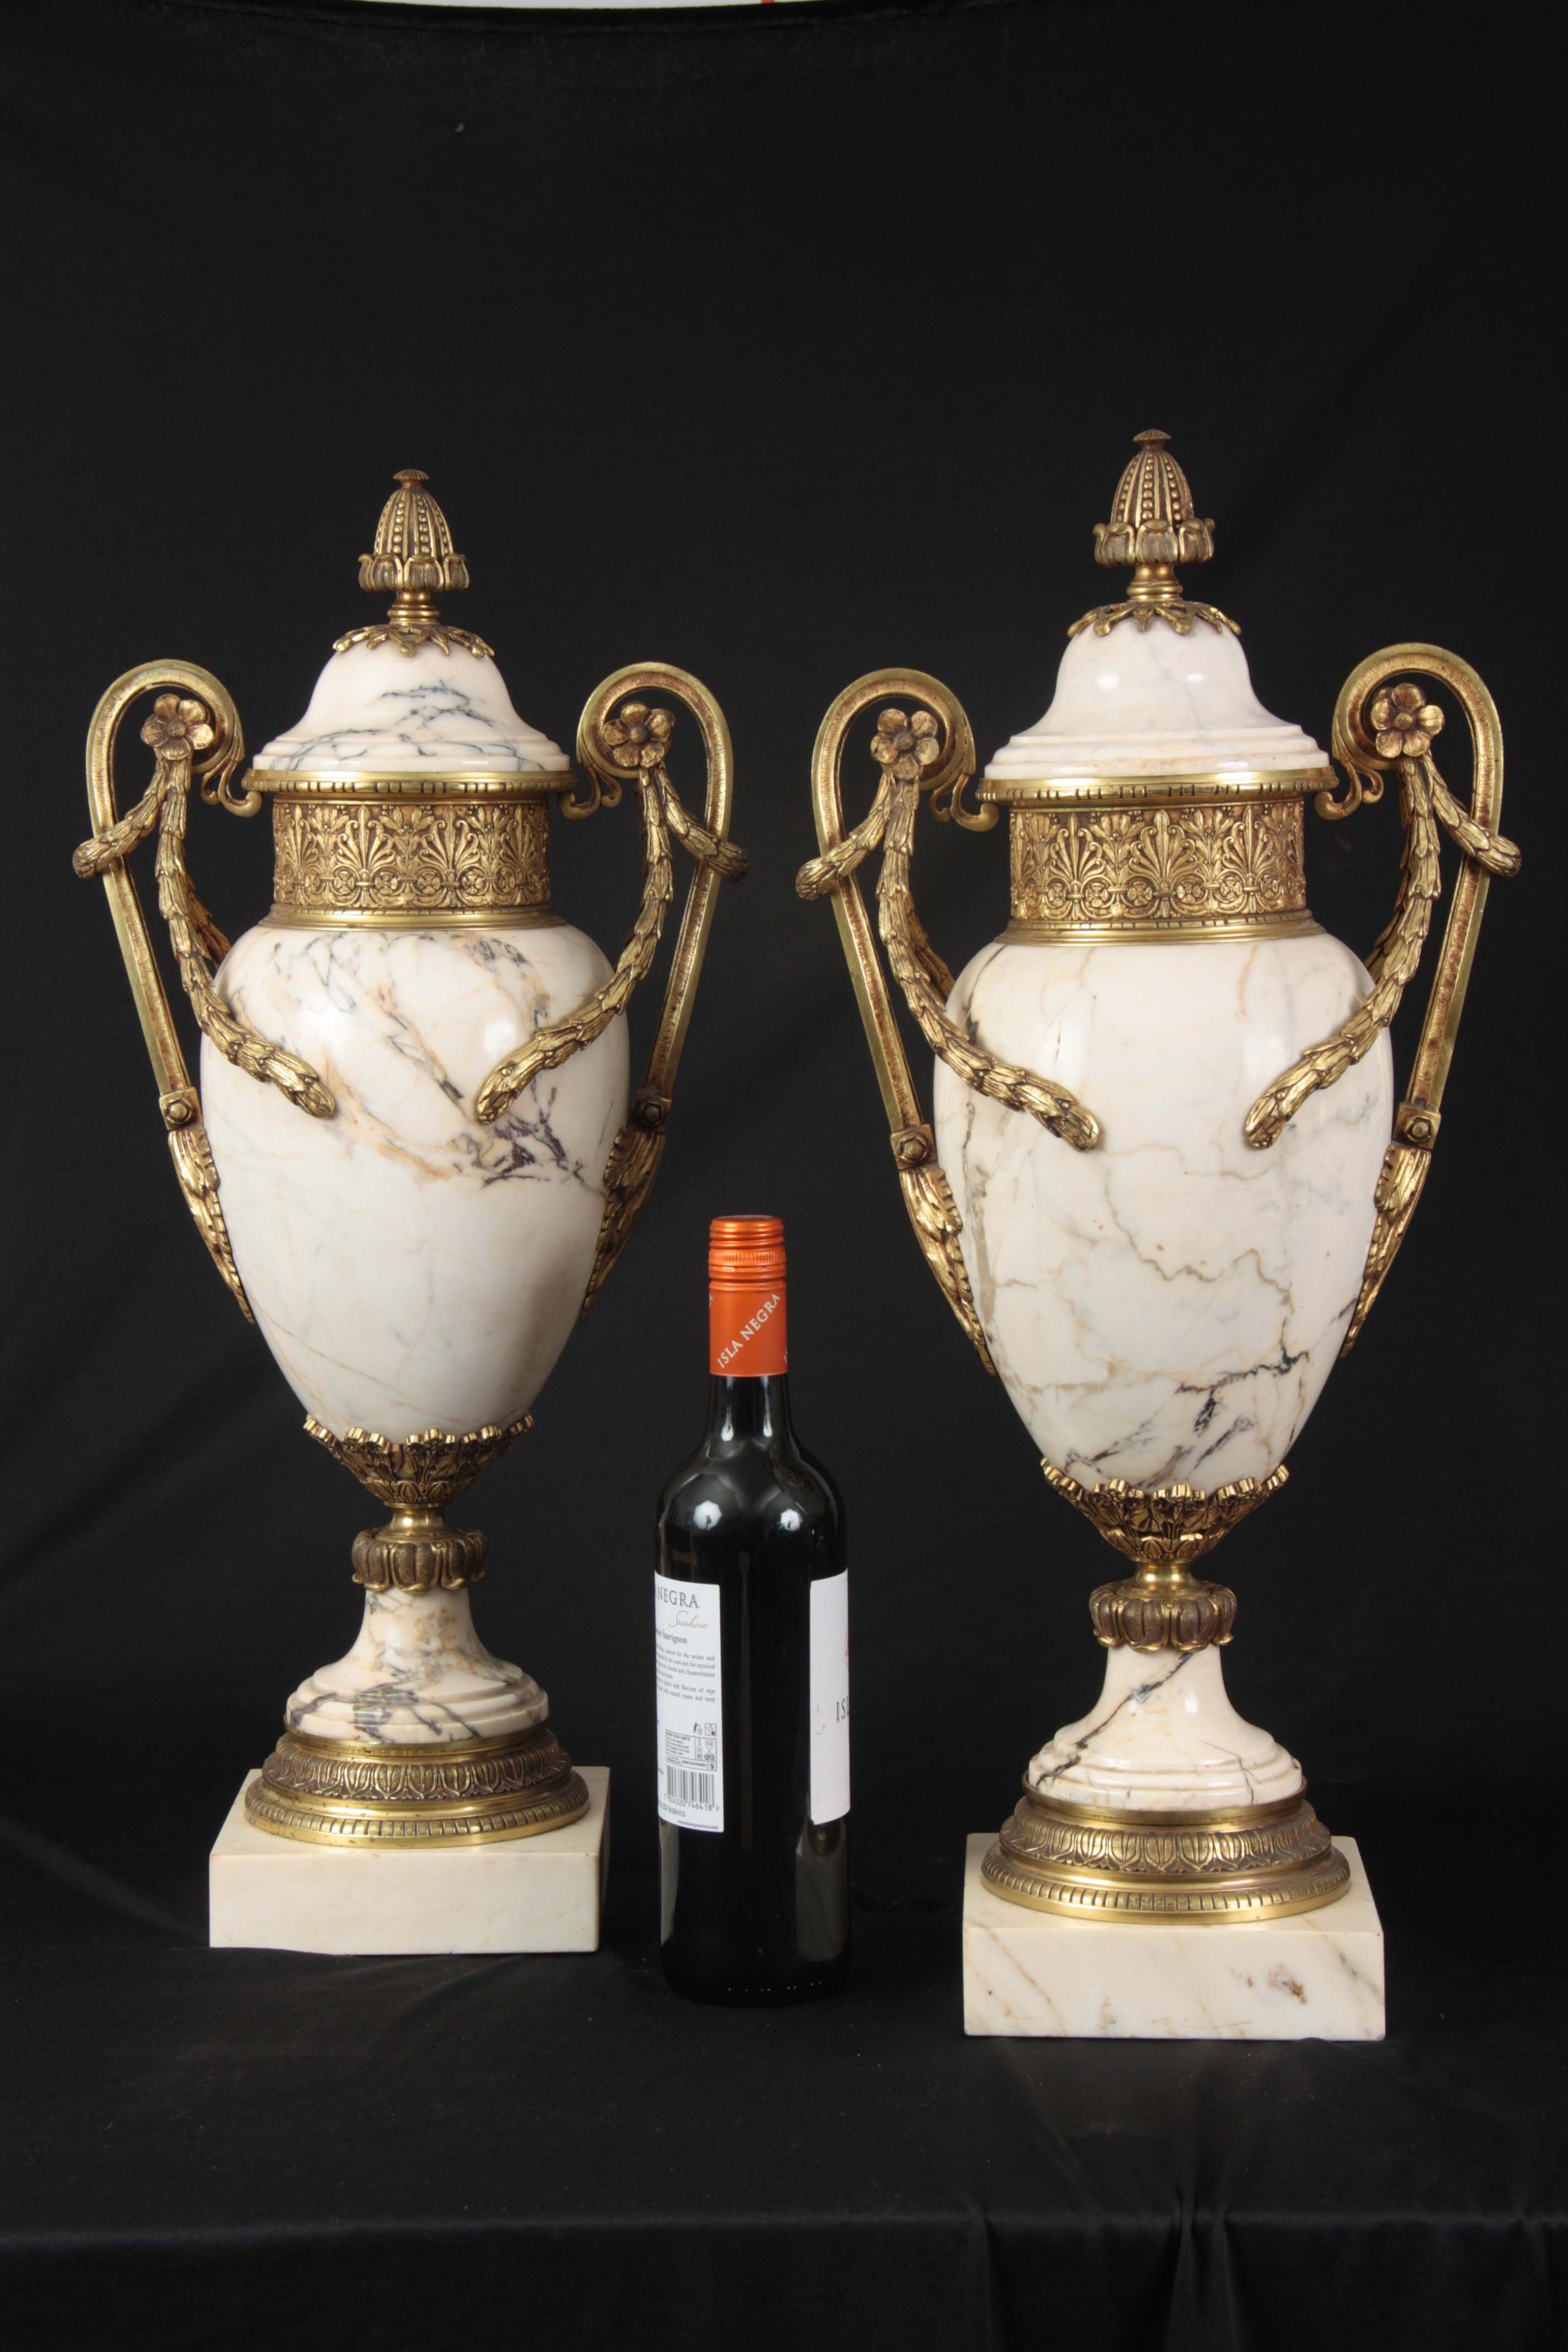 AN IMPRESSIVE PAIR OF FRENCH ORMOLU MOUNTED VEINED WHITE MARBLE CASOLETTES with floral swag work - Image 8 of 8